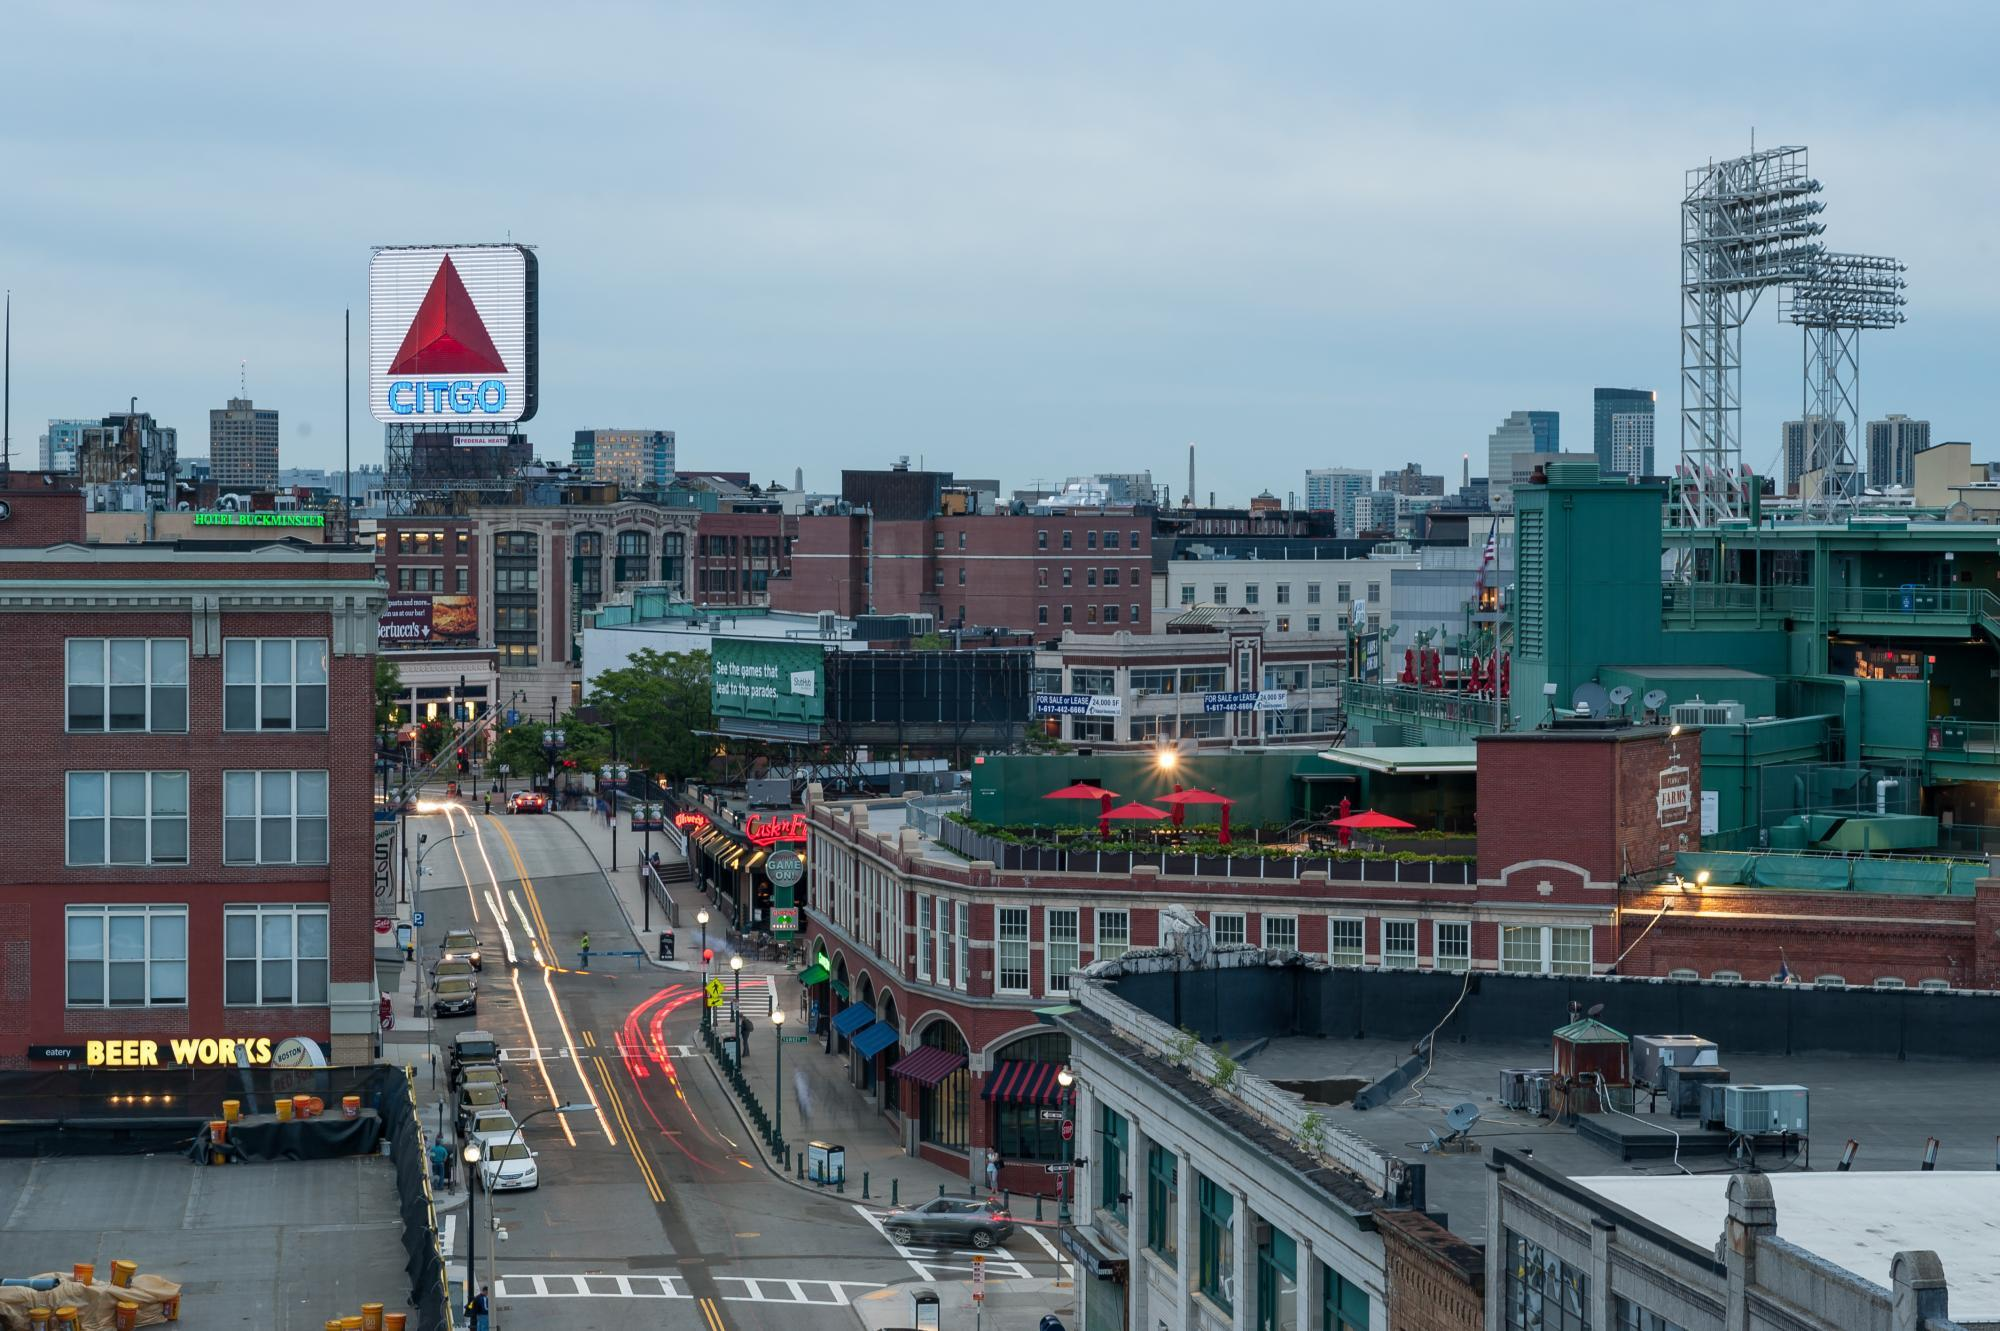 Fenway area, with the park to the right and the CITGO sign in the background.